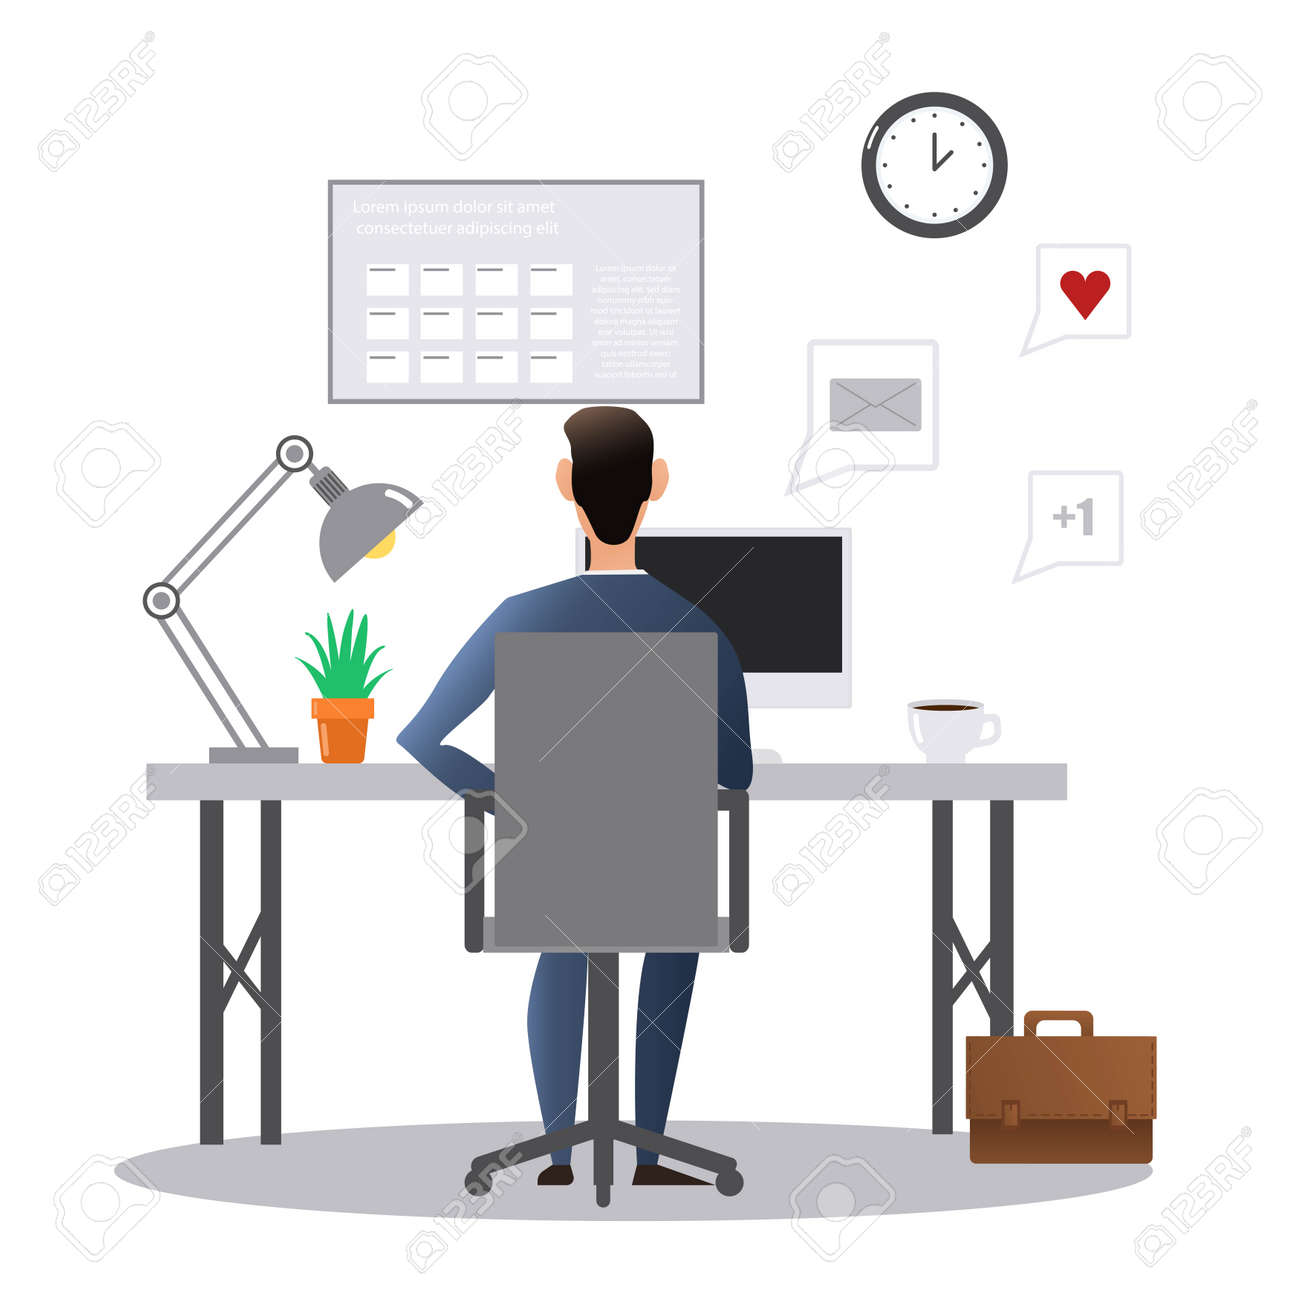 Vector cartoon style drawn illustration of man at the desk working in the office. - 169439880